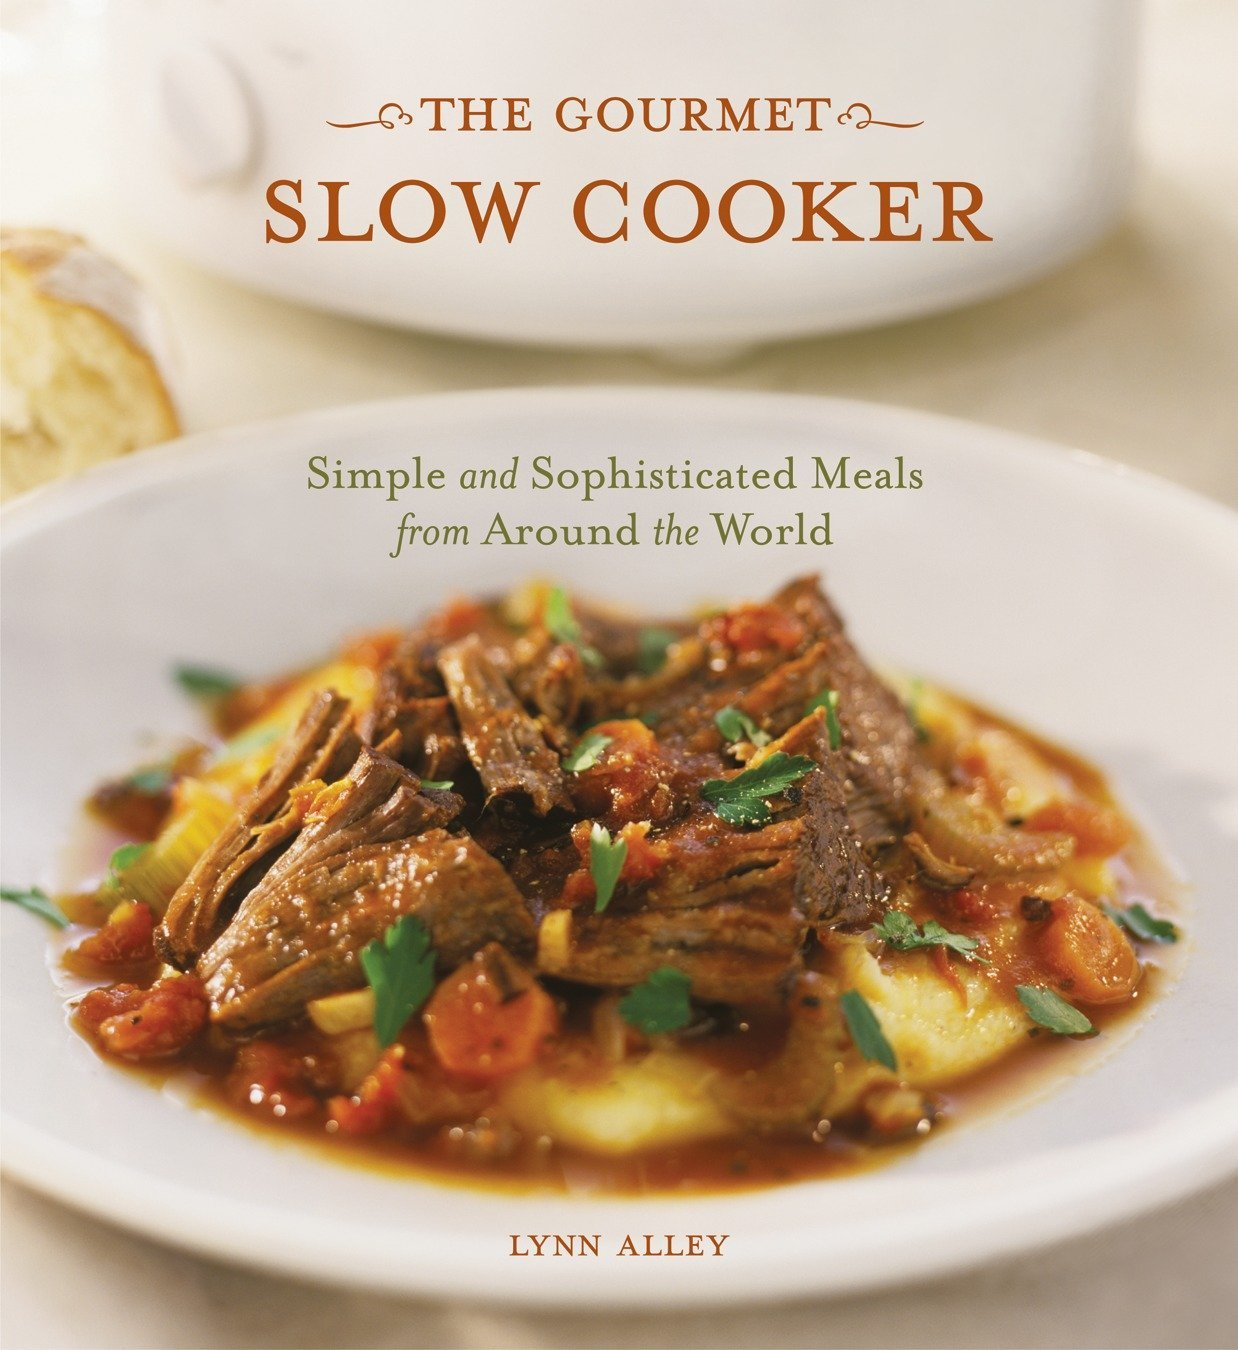 Download The Gourmet Slow Cooker: Simple and Sophisticated Meals from Around the World PDF